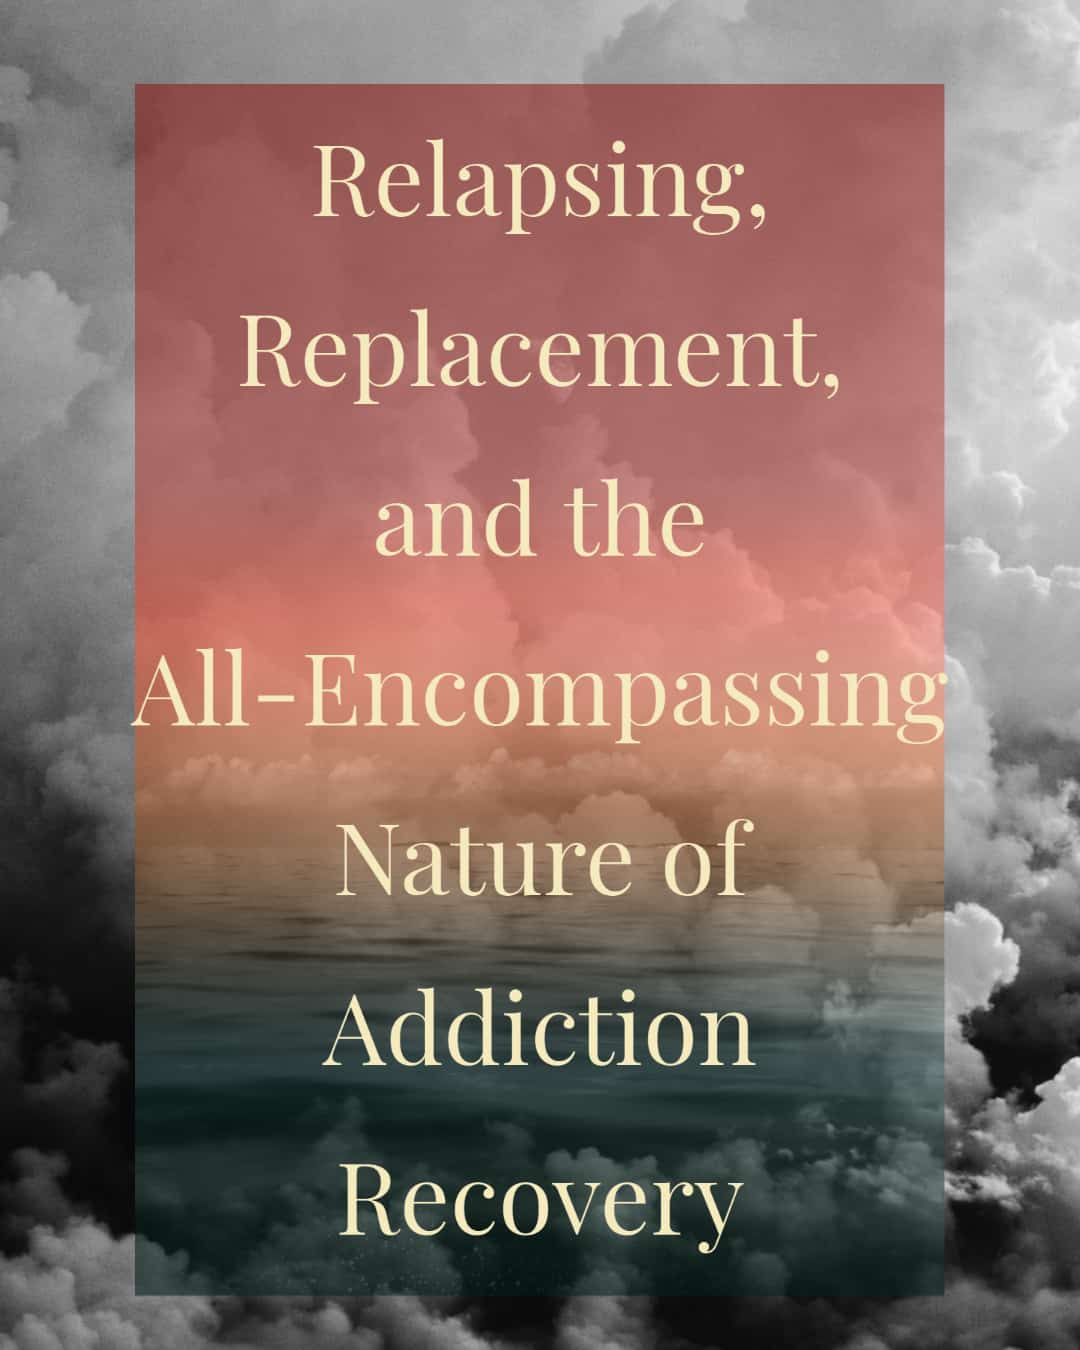 Relapsing, Replacement, and the All-Encompassing Nature of Addiction Recovery